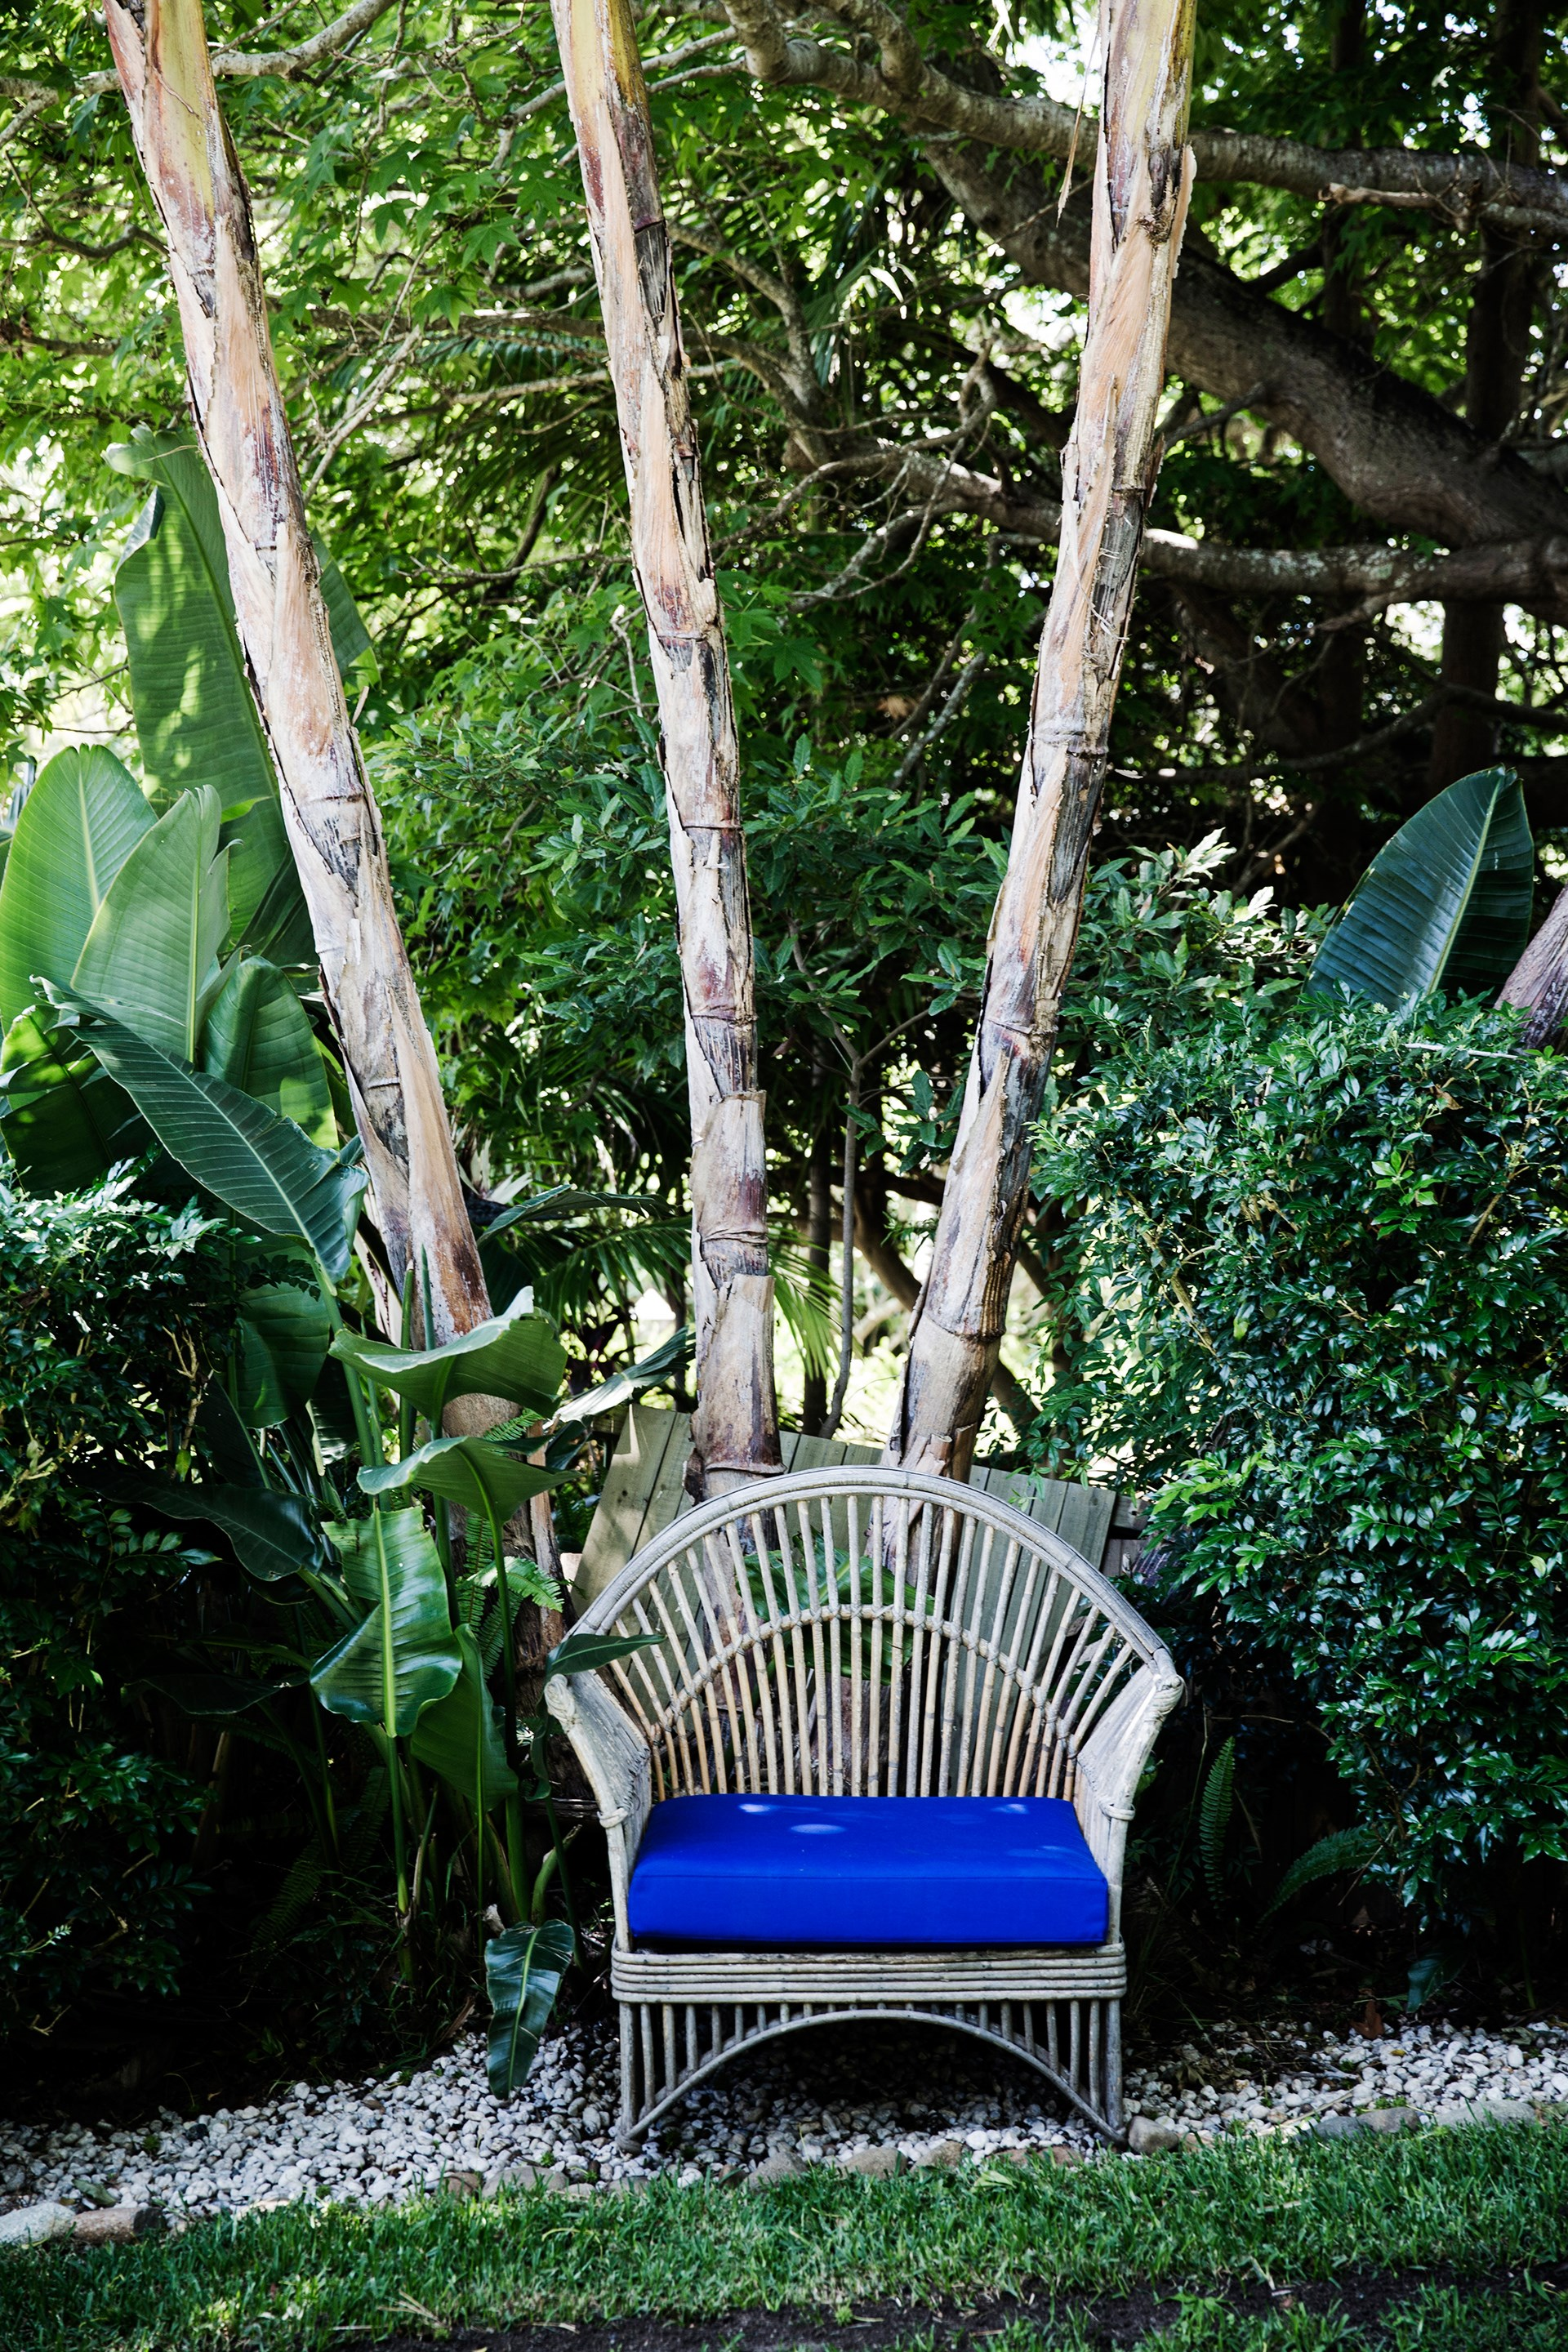 """**Use salvaged outdoor furniture** – do not put any precious pieces outside as they are bound to suffer wear and tear. [Take a tour of this eclectic home by the beach](http://www.homestolove.com.au/eclectic-home-by-the-beach-3671